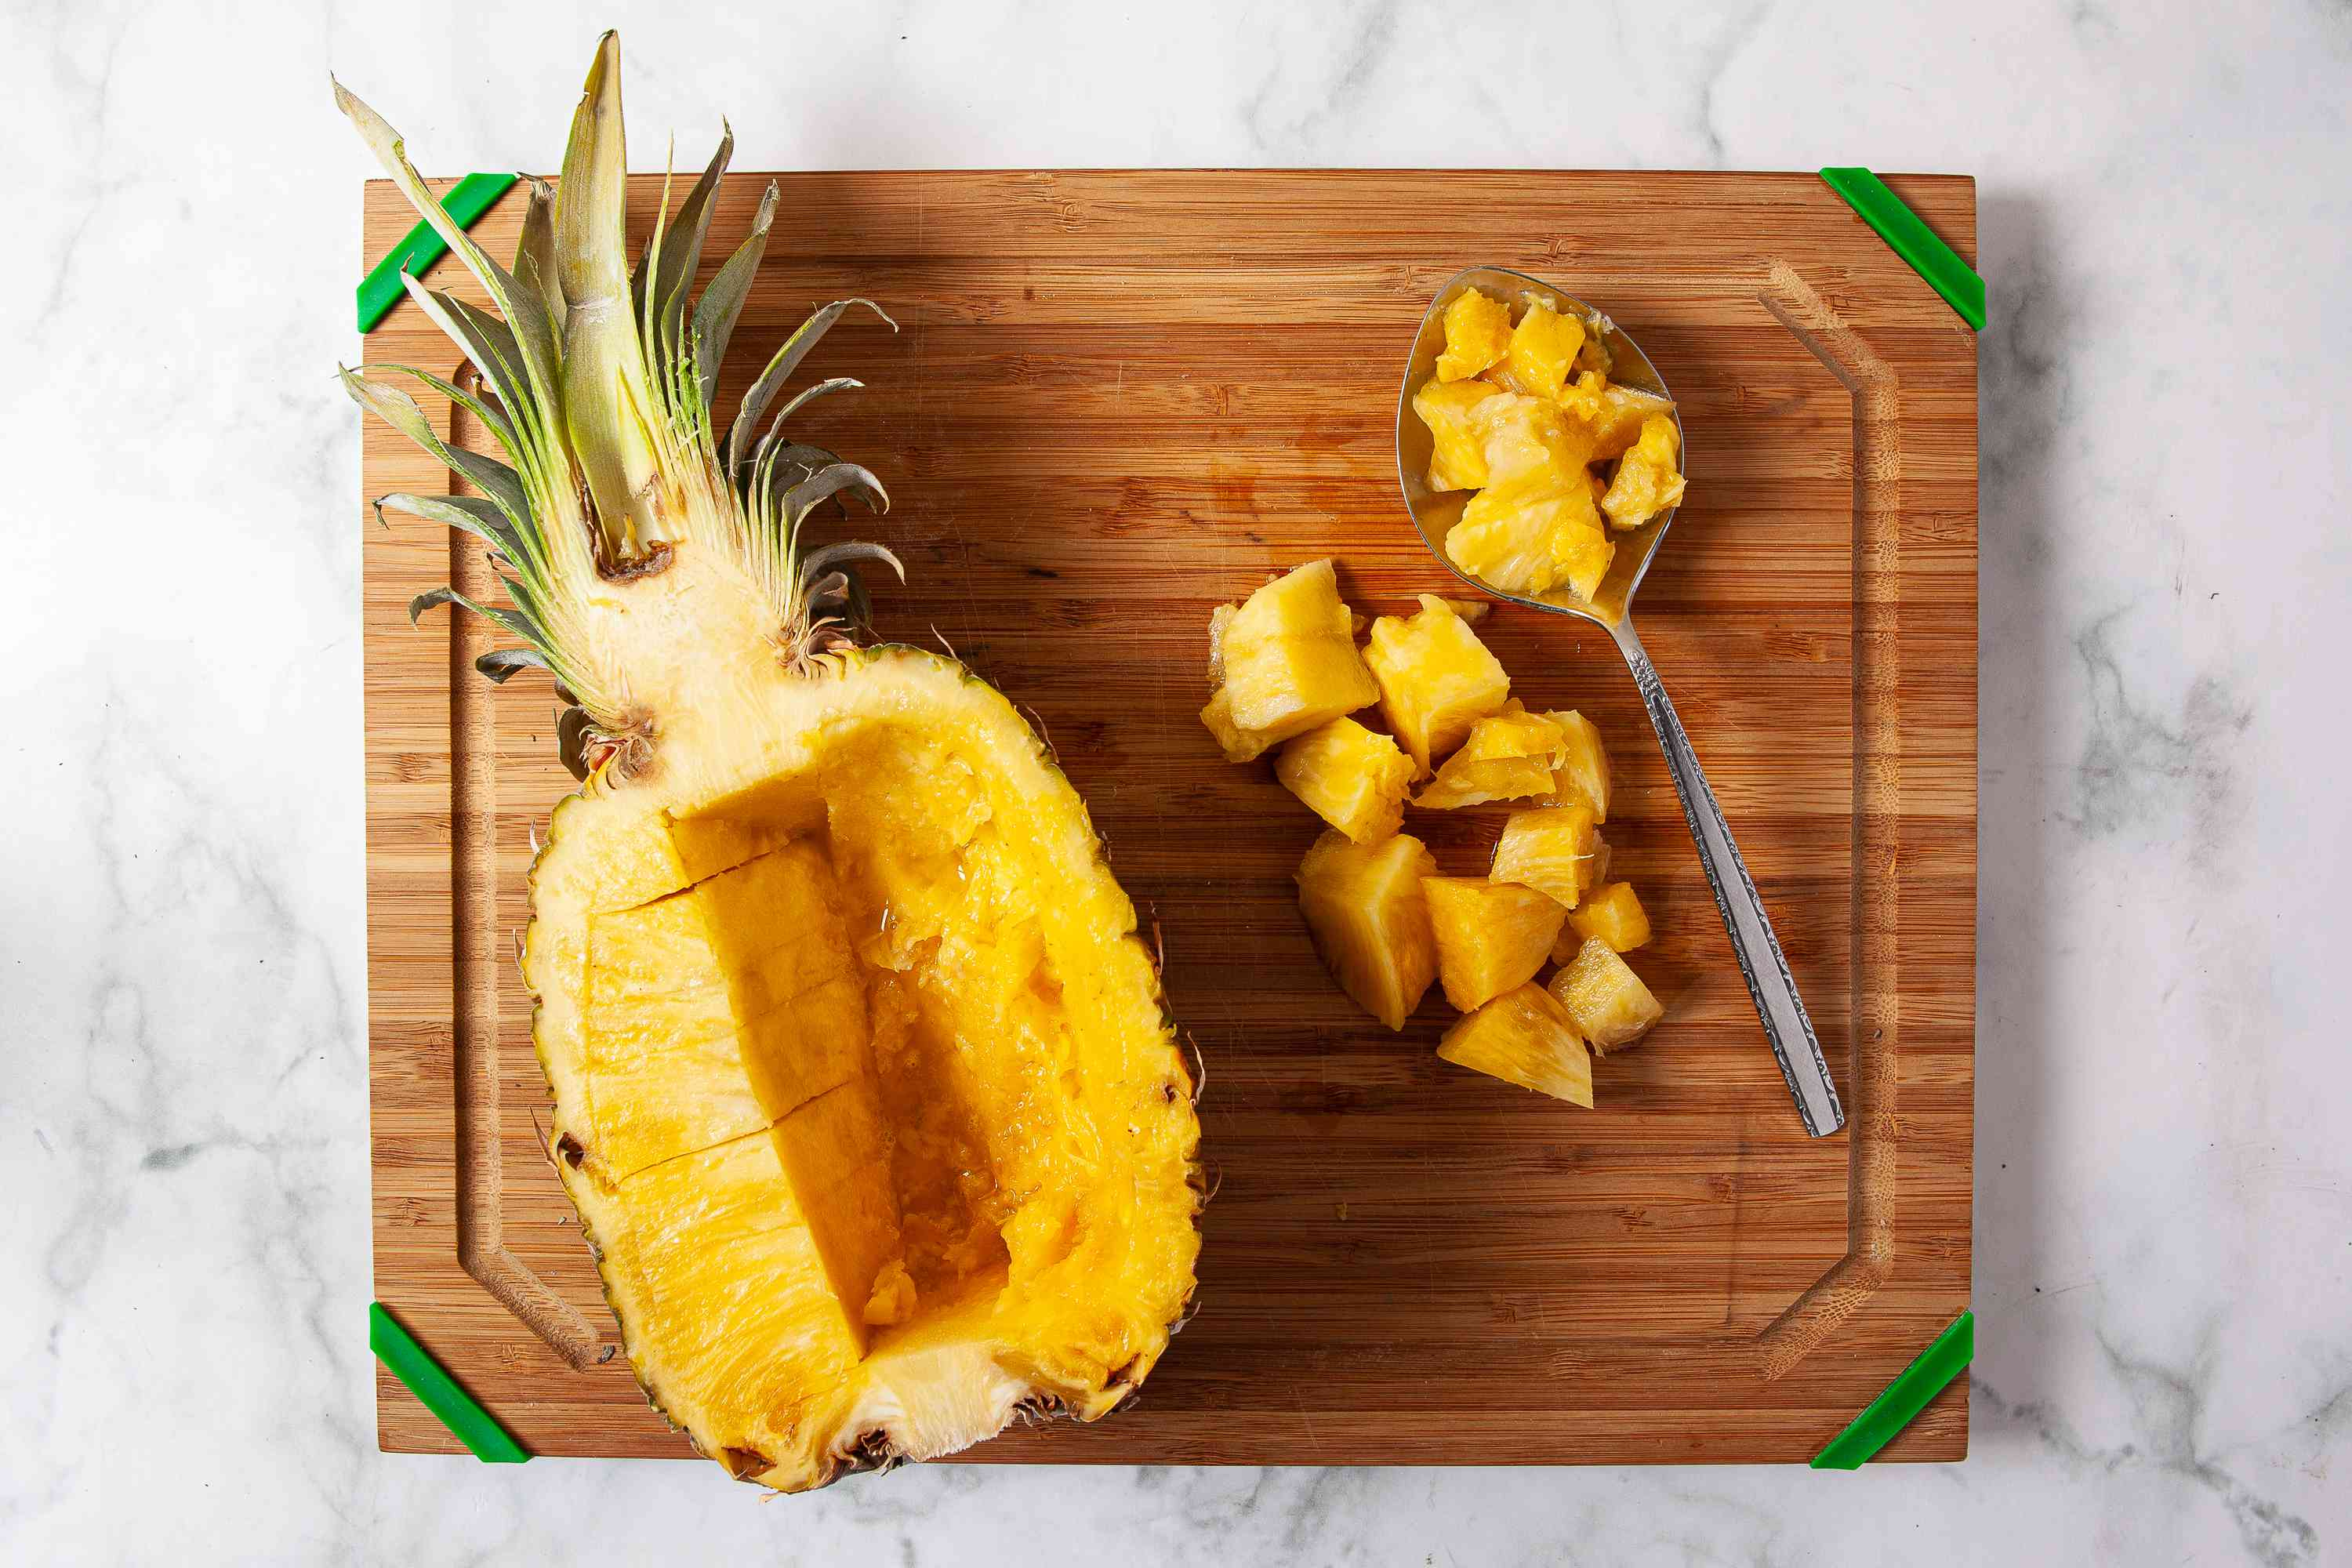 Score the pineapple by slicing into chunks